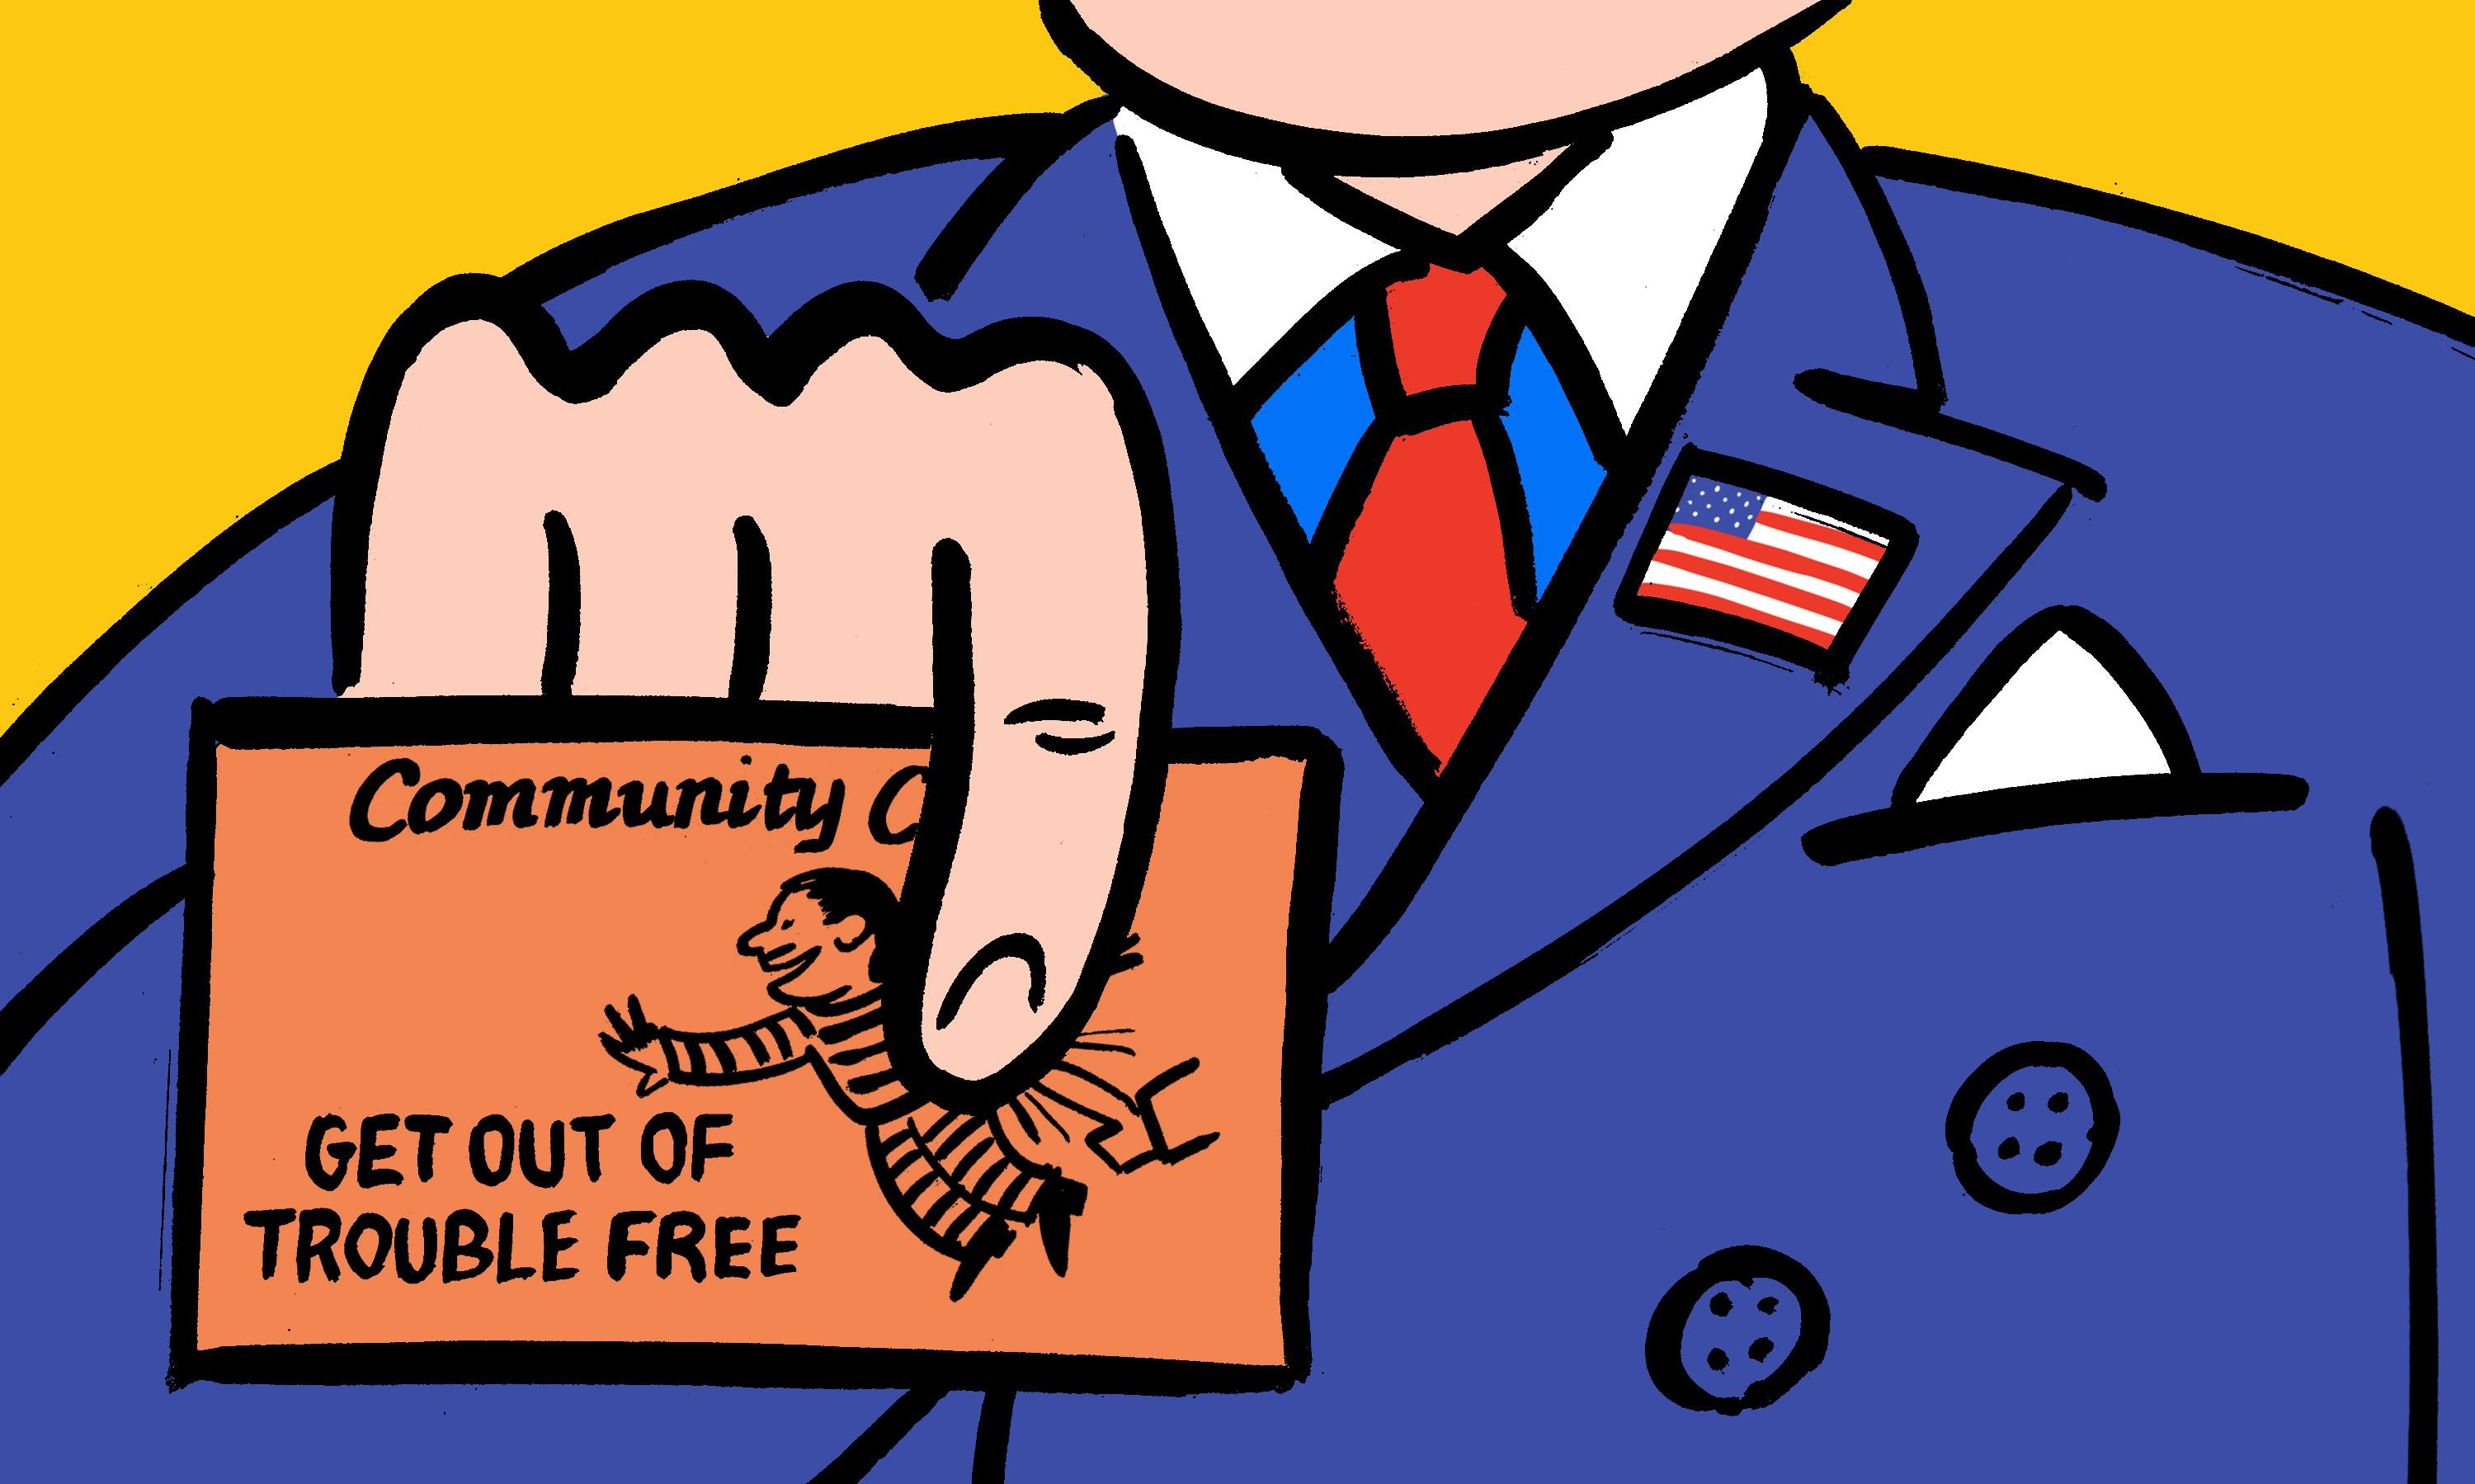 America's new aristocracy lives in an accountability-free zone